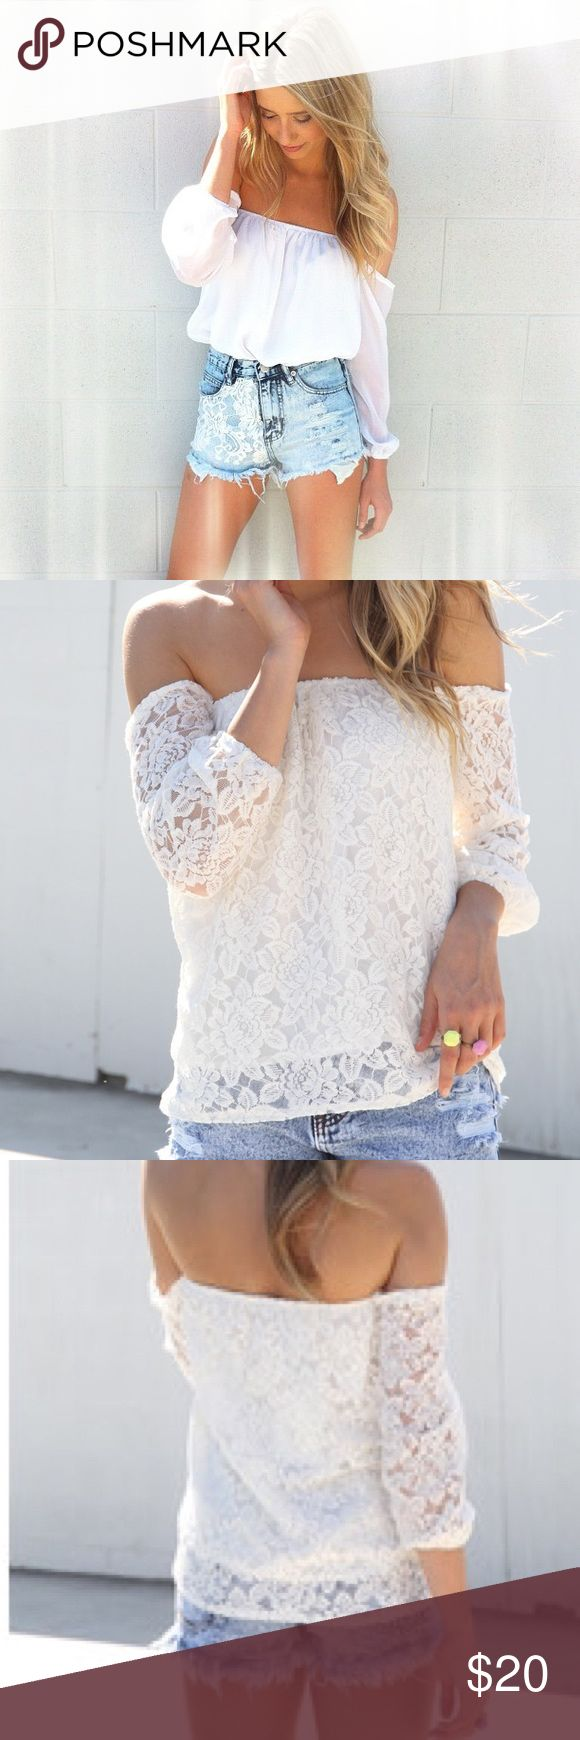 Sabo Skirt Off the Shoulder White Lace Top Super cute tucked into shorts like the model in the first pic! In great condition. Sabo skirt size 8 = US size 0 Sabo Skirt Tops Blouses